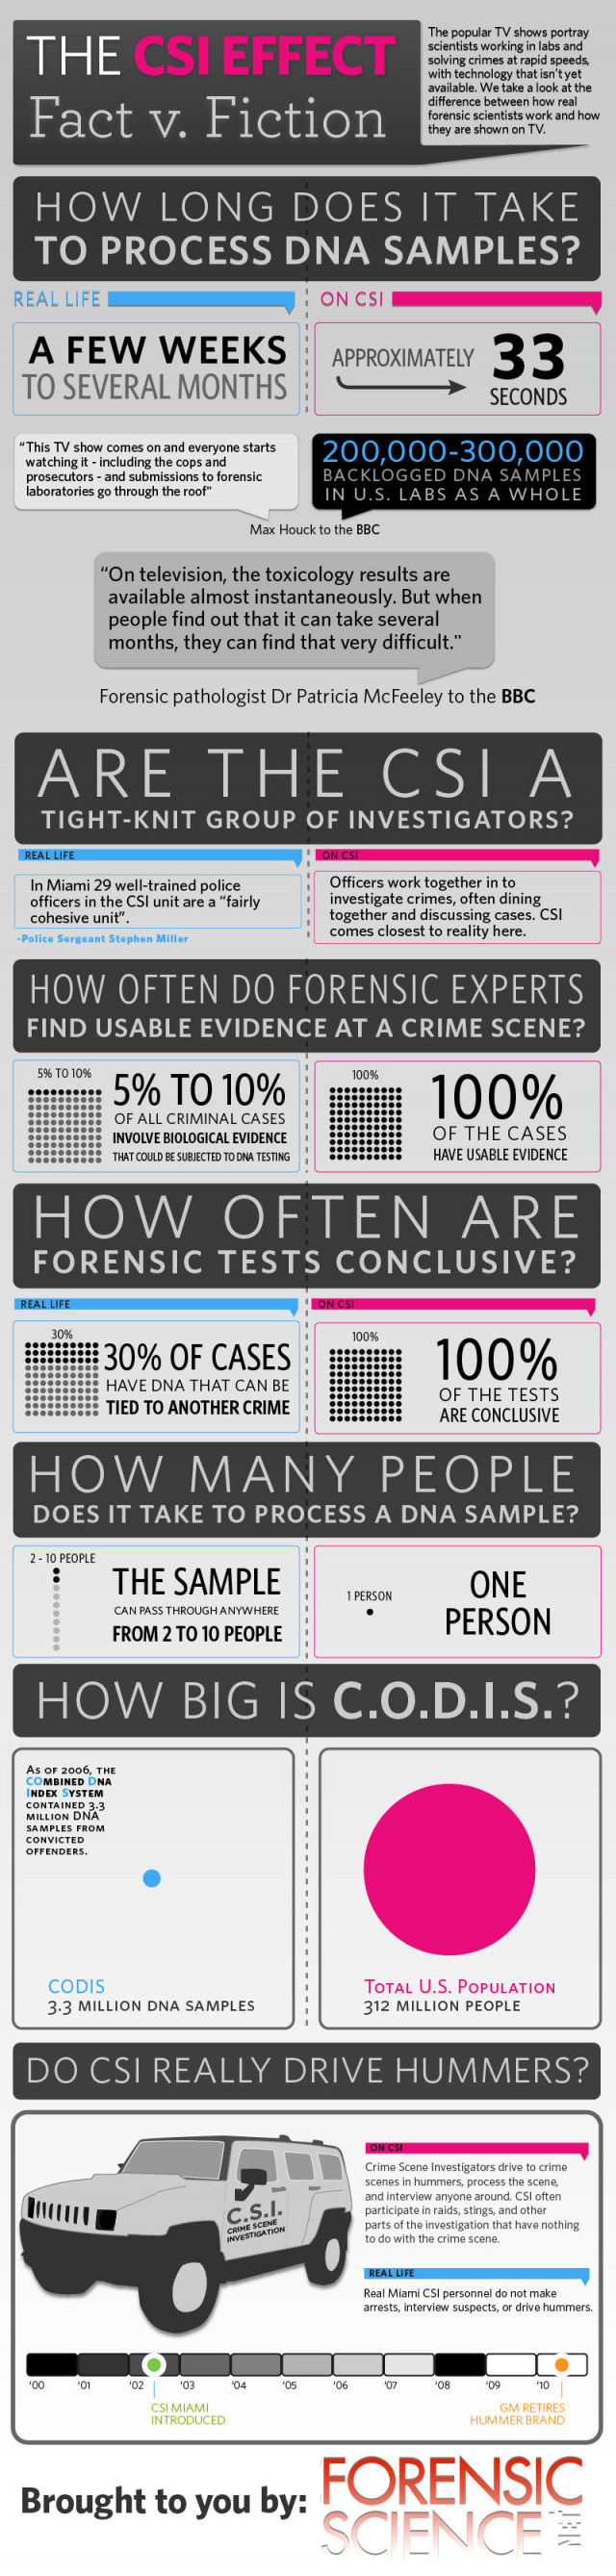 The CSI Effect: Fact vs. Fiction